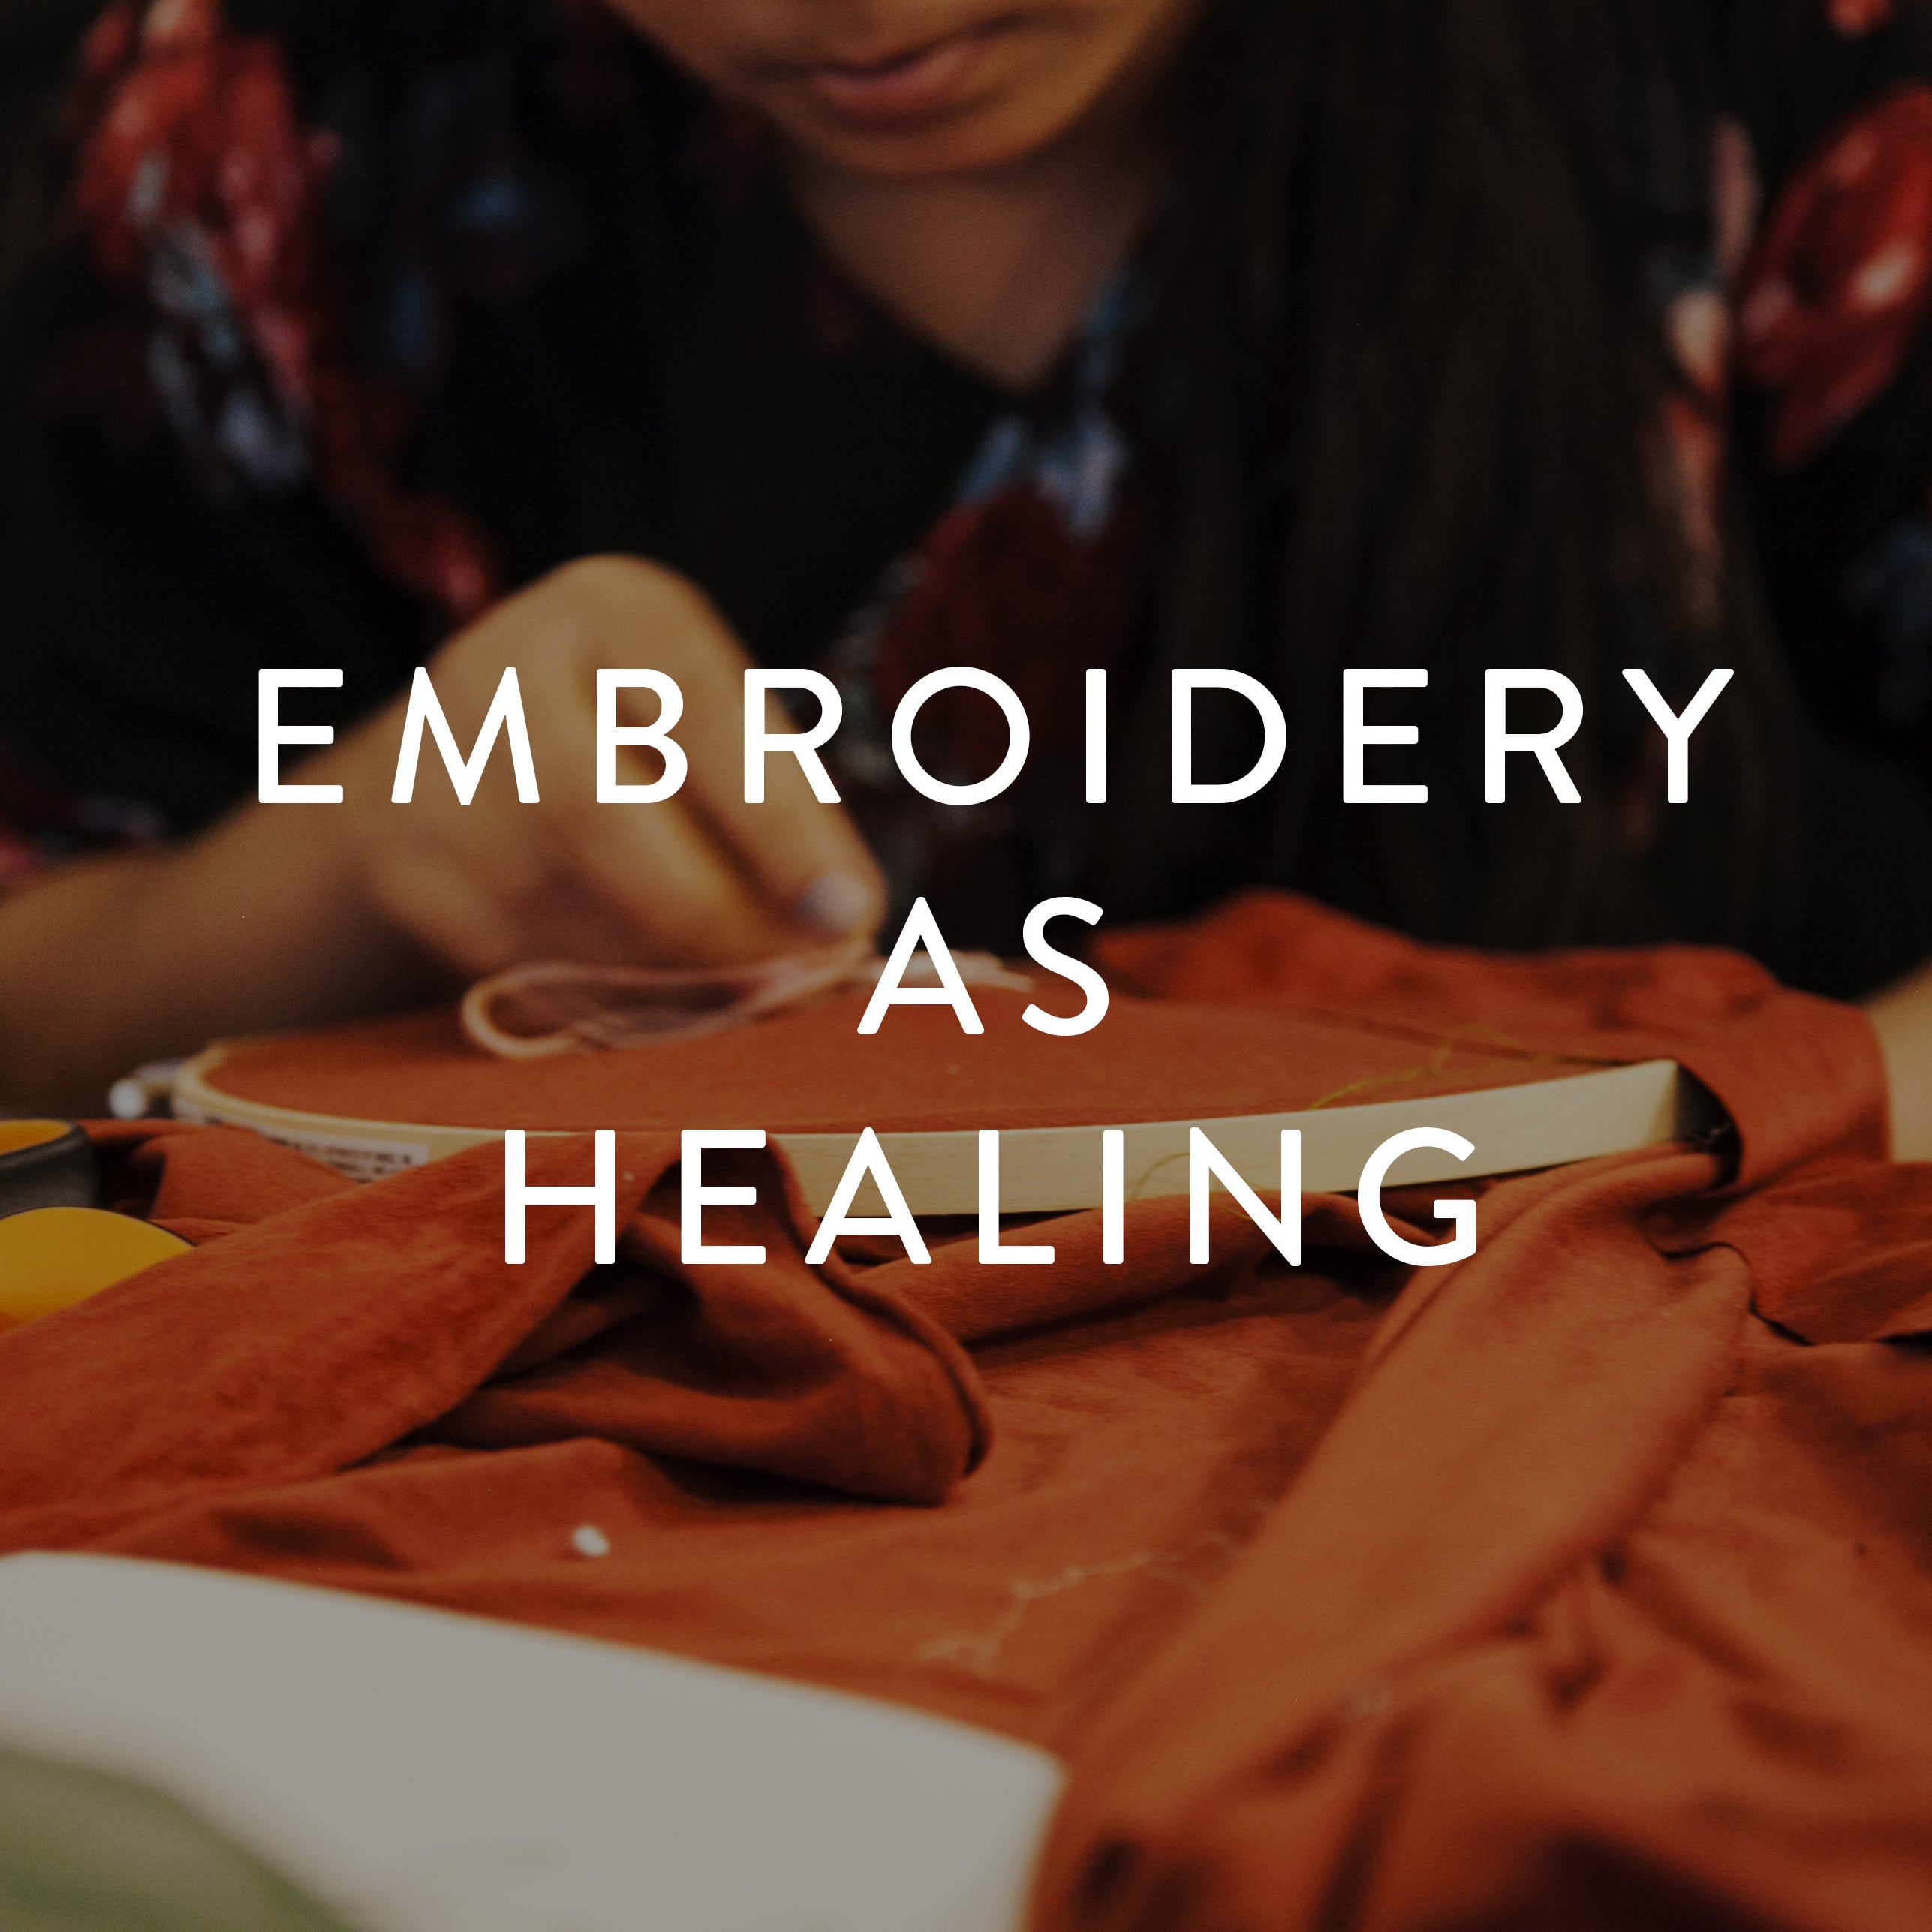 Monday, April 29th -- Embroidery as Healing